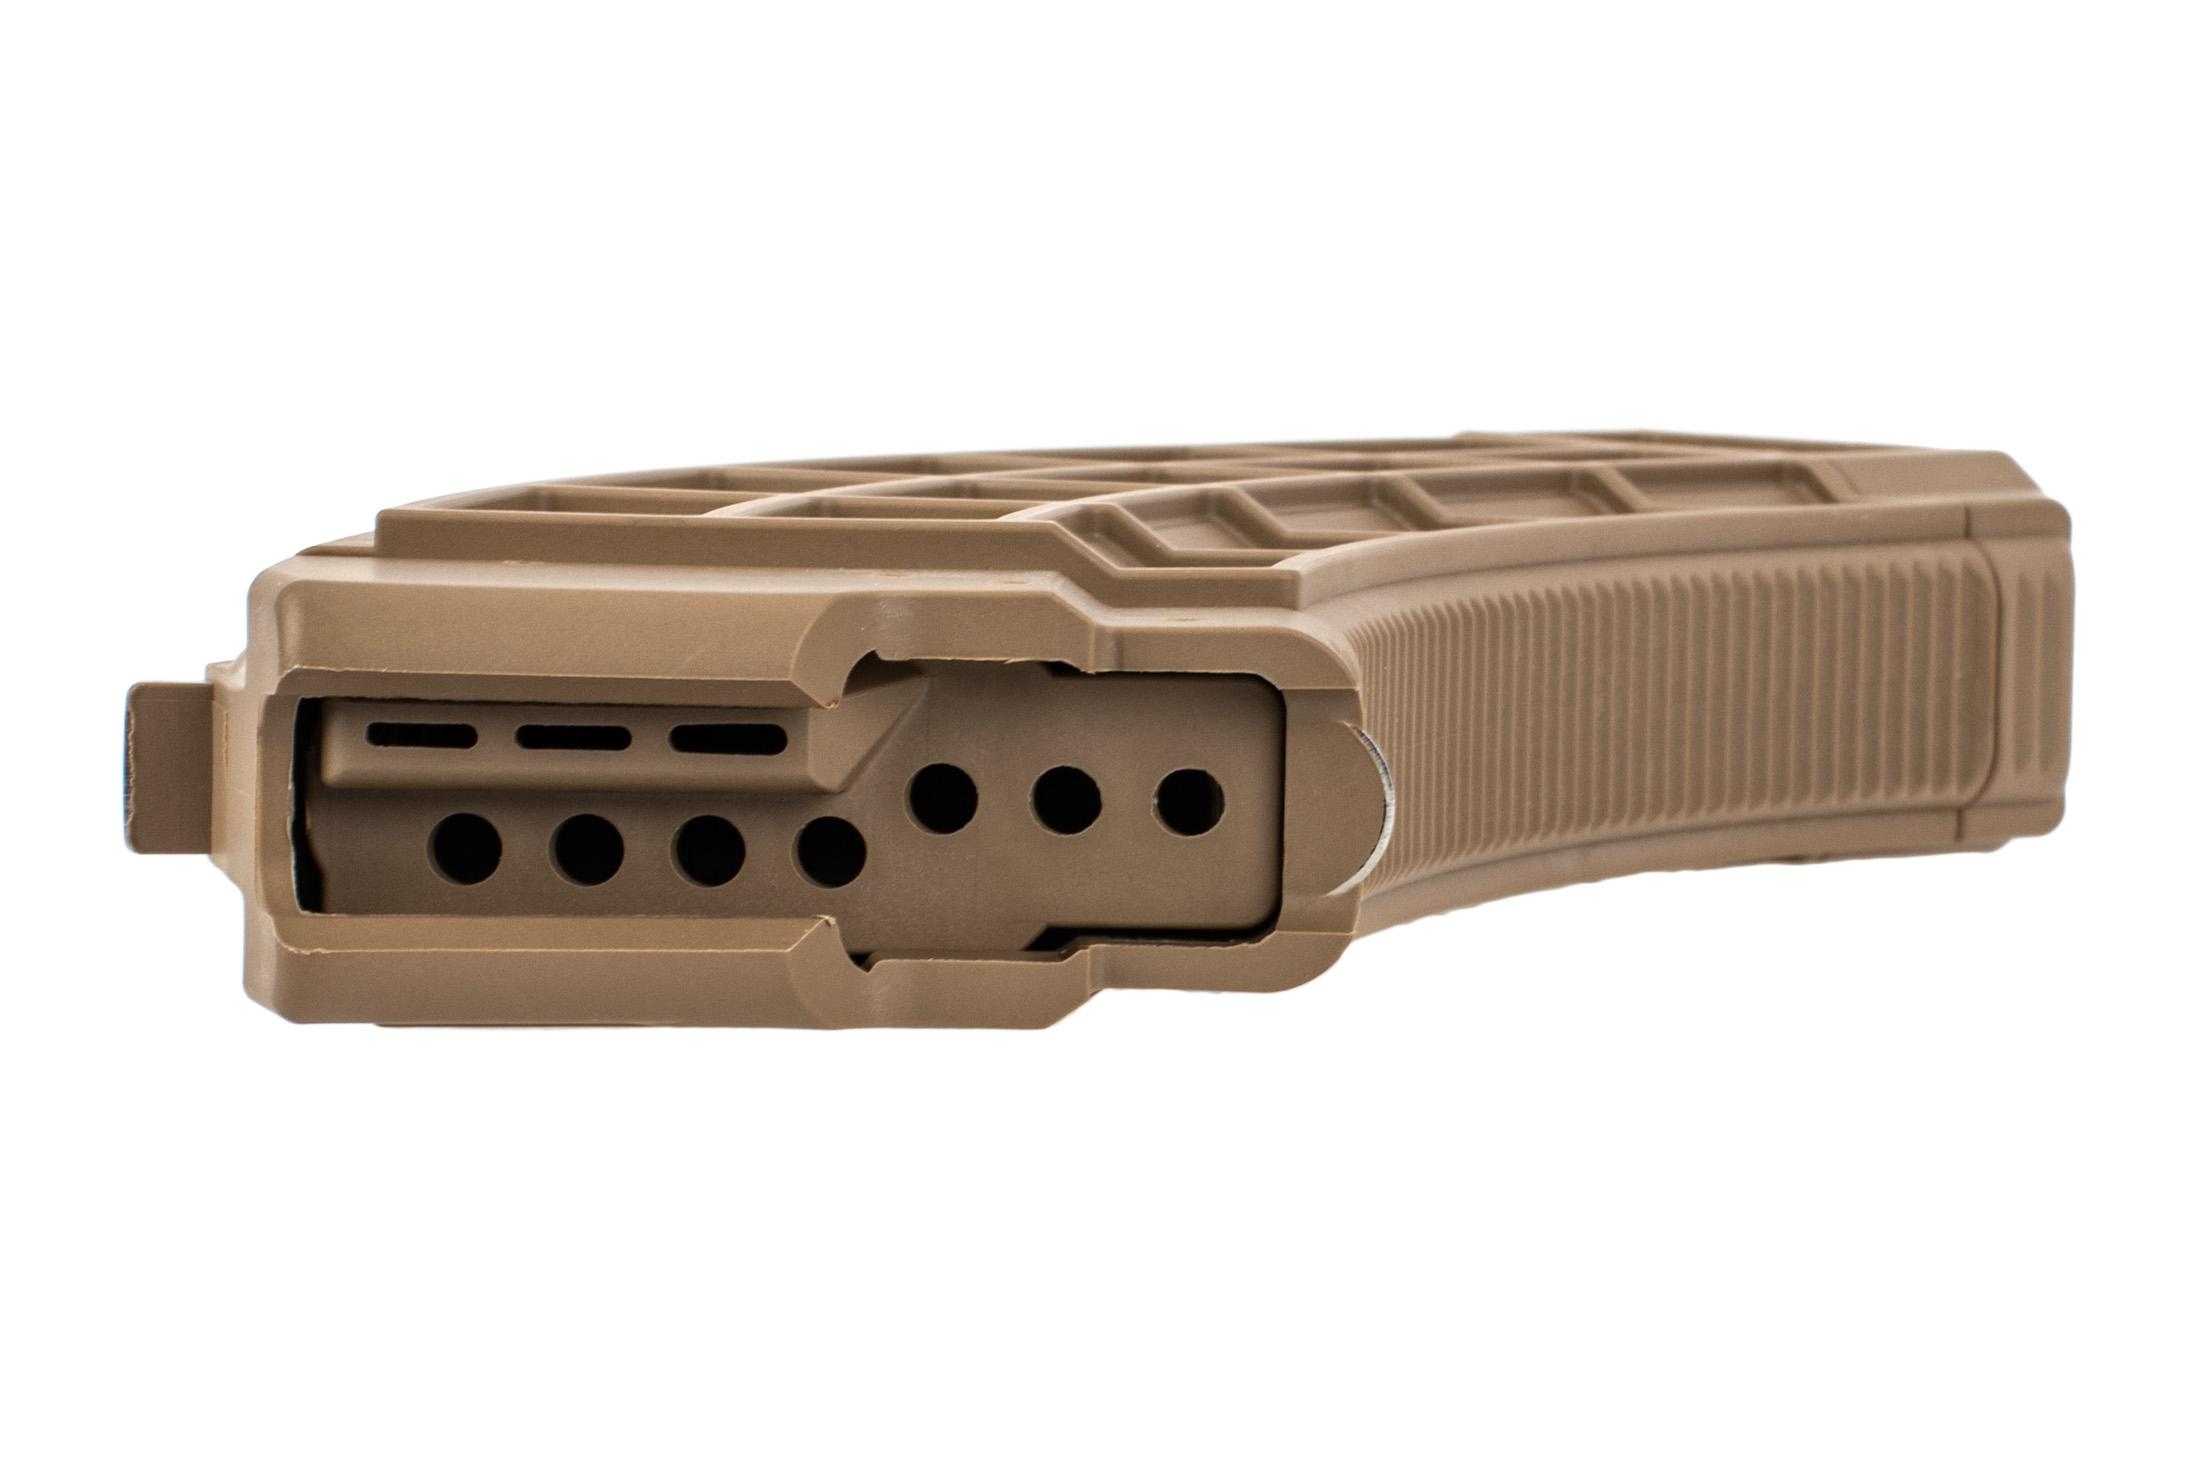 US Palm AK47 polymer magazine FDE features a durable waffle pattern for reinforcment